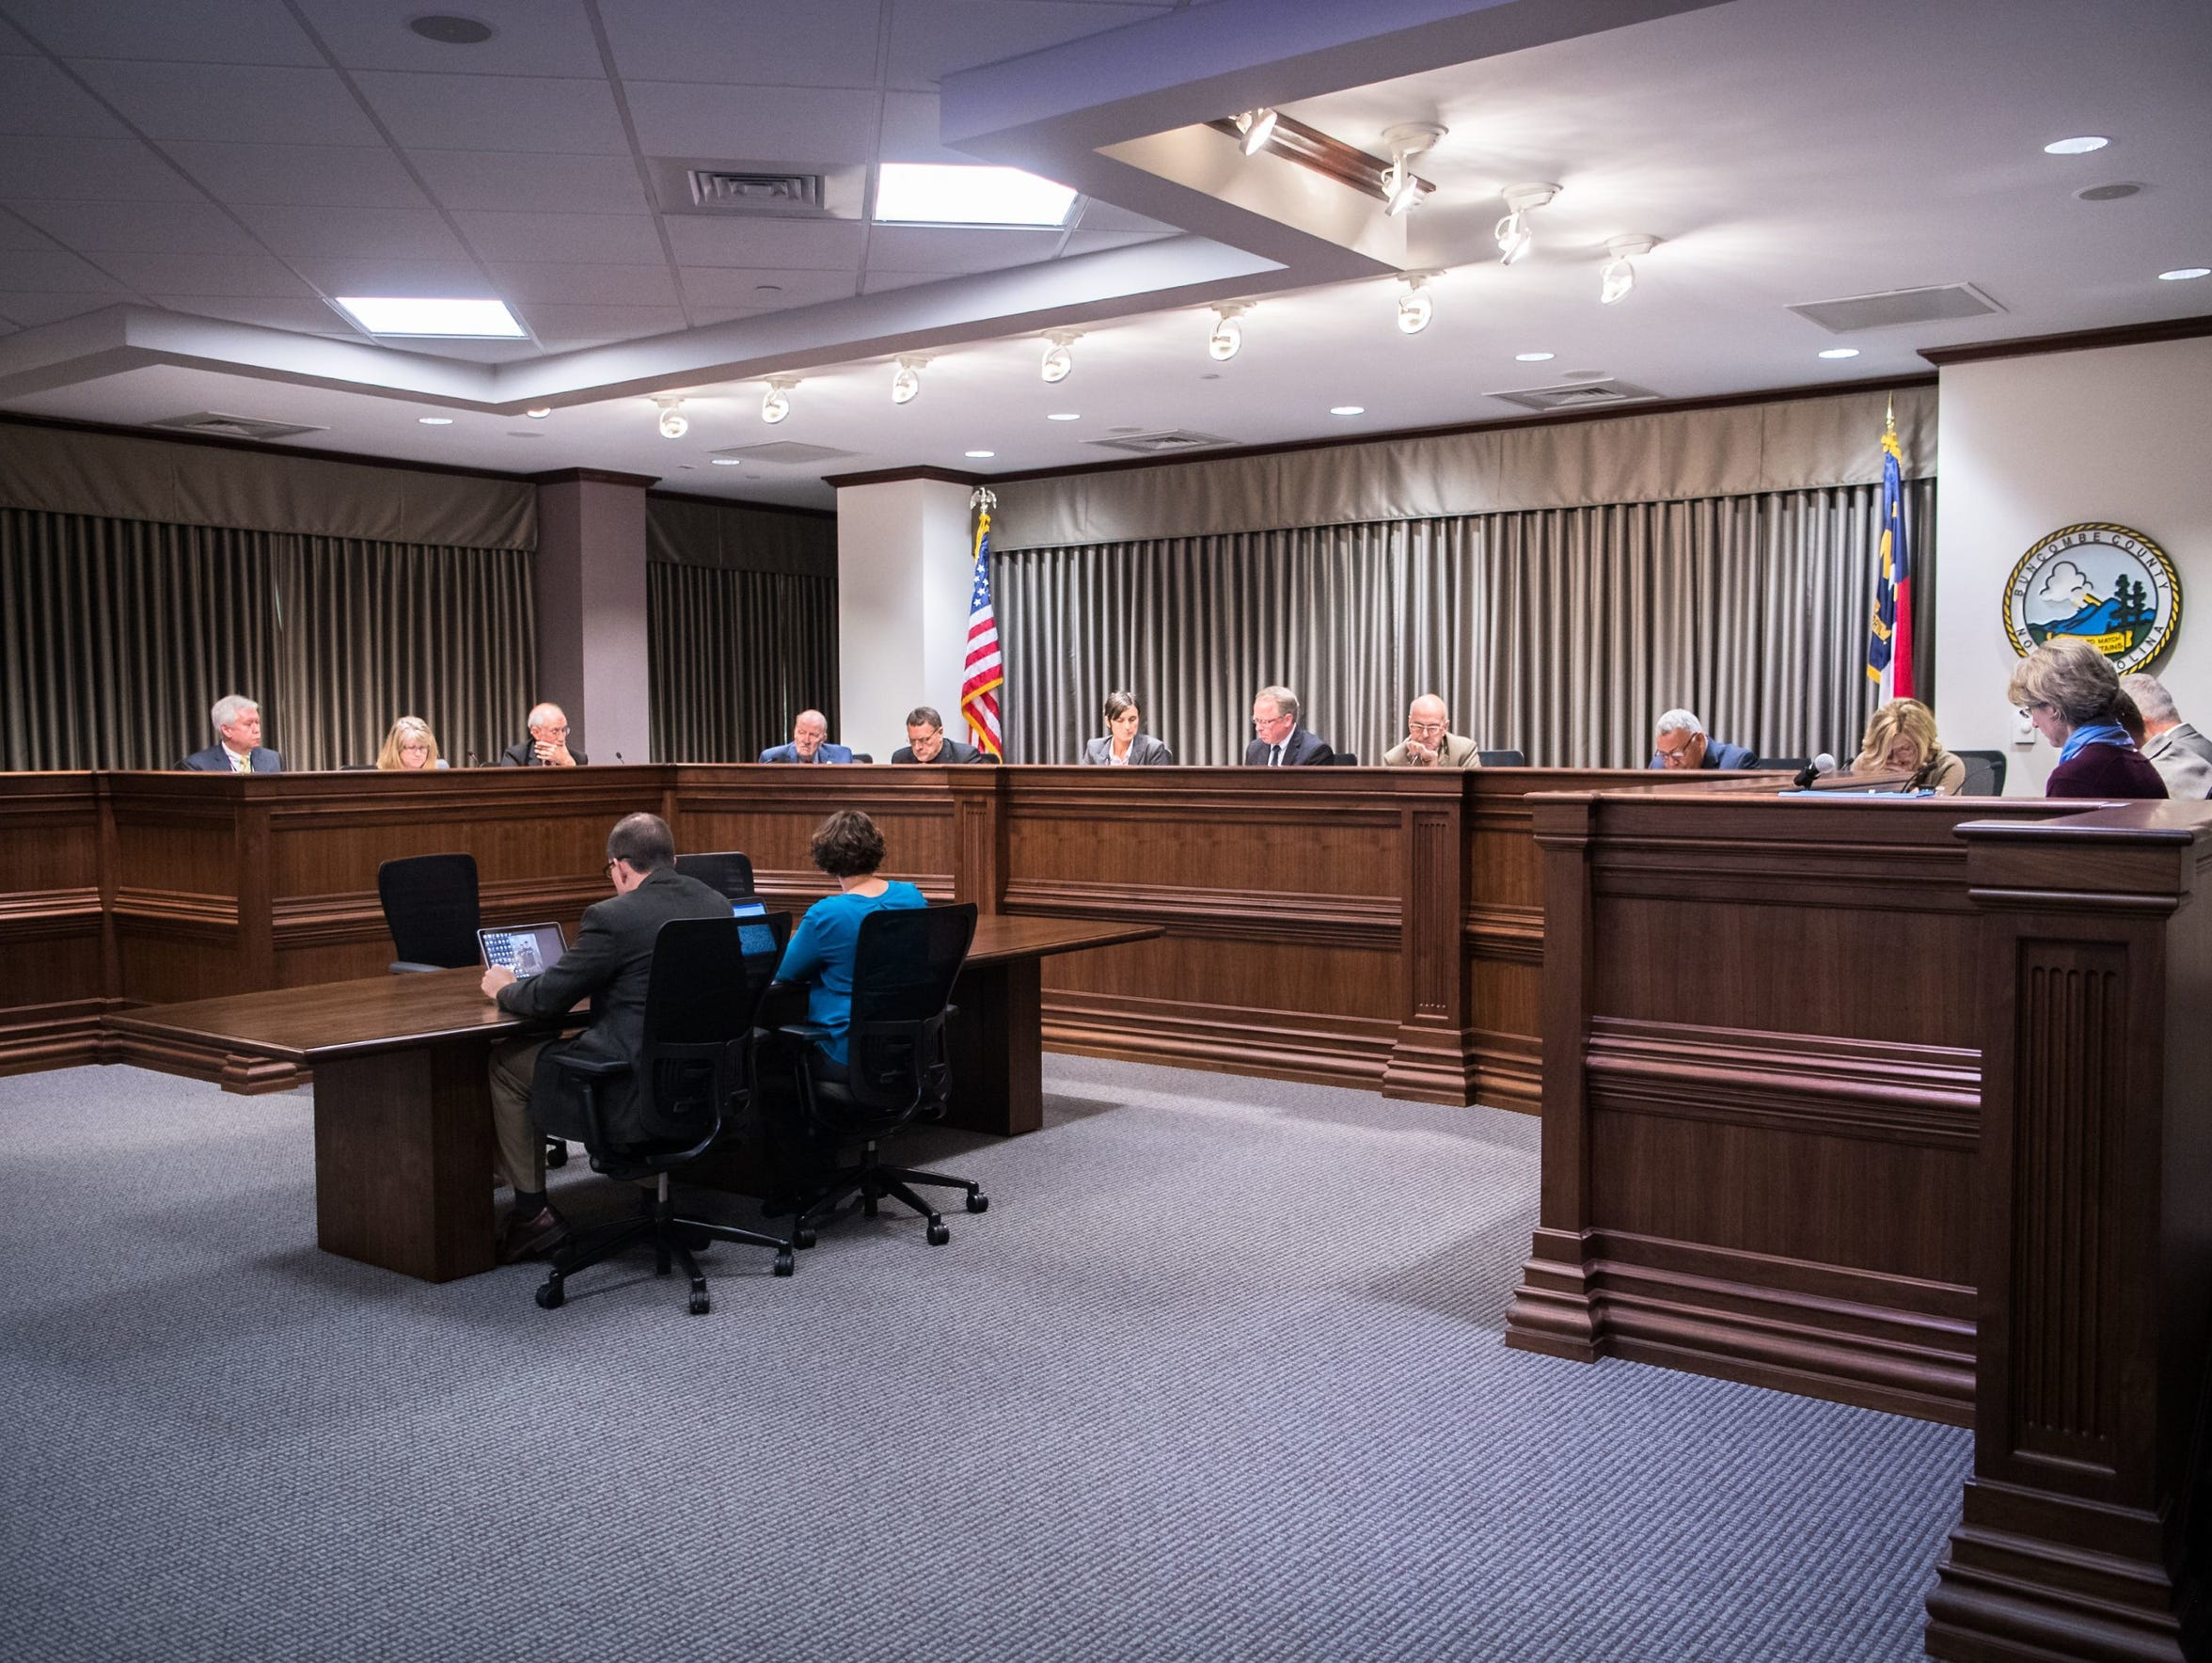 Buncombe County's Board of Commissioners voted 5-2